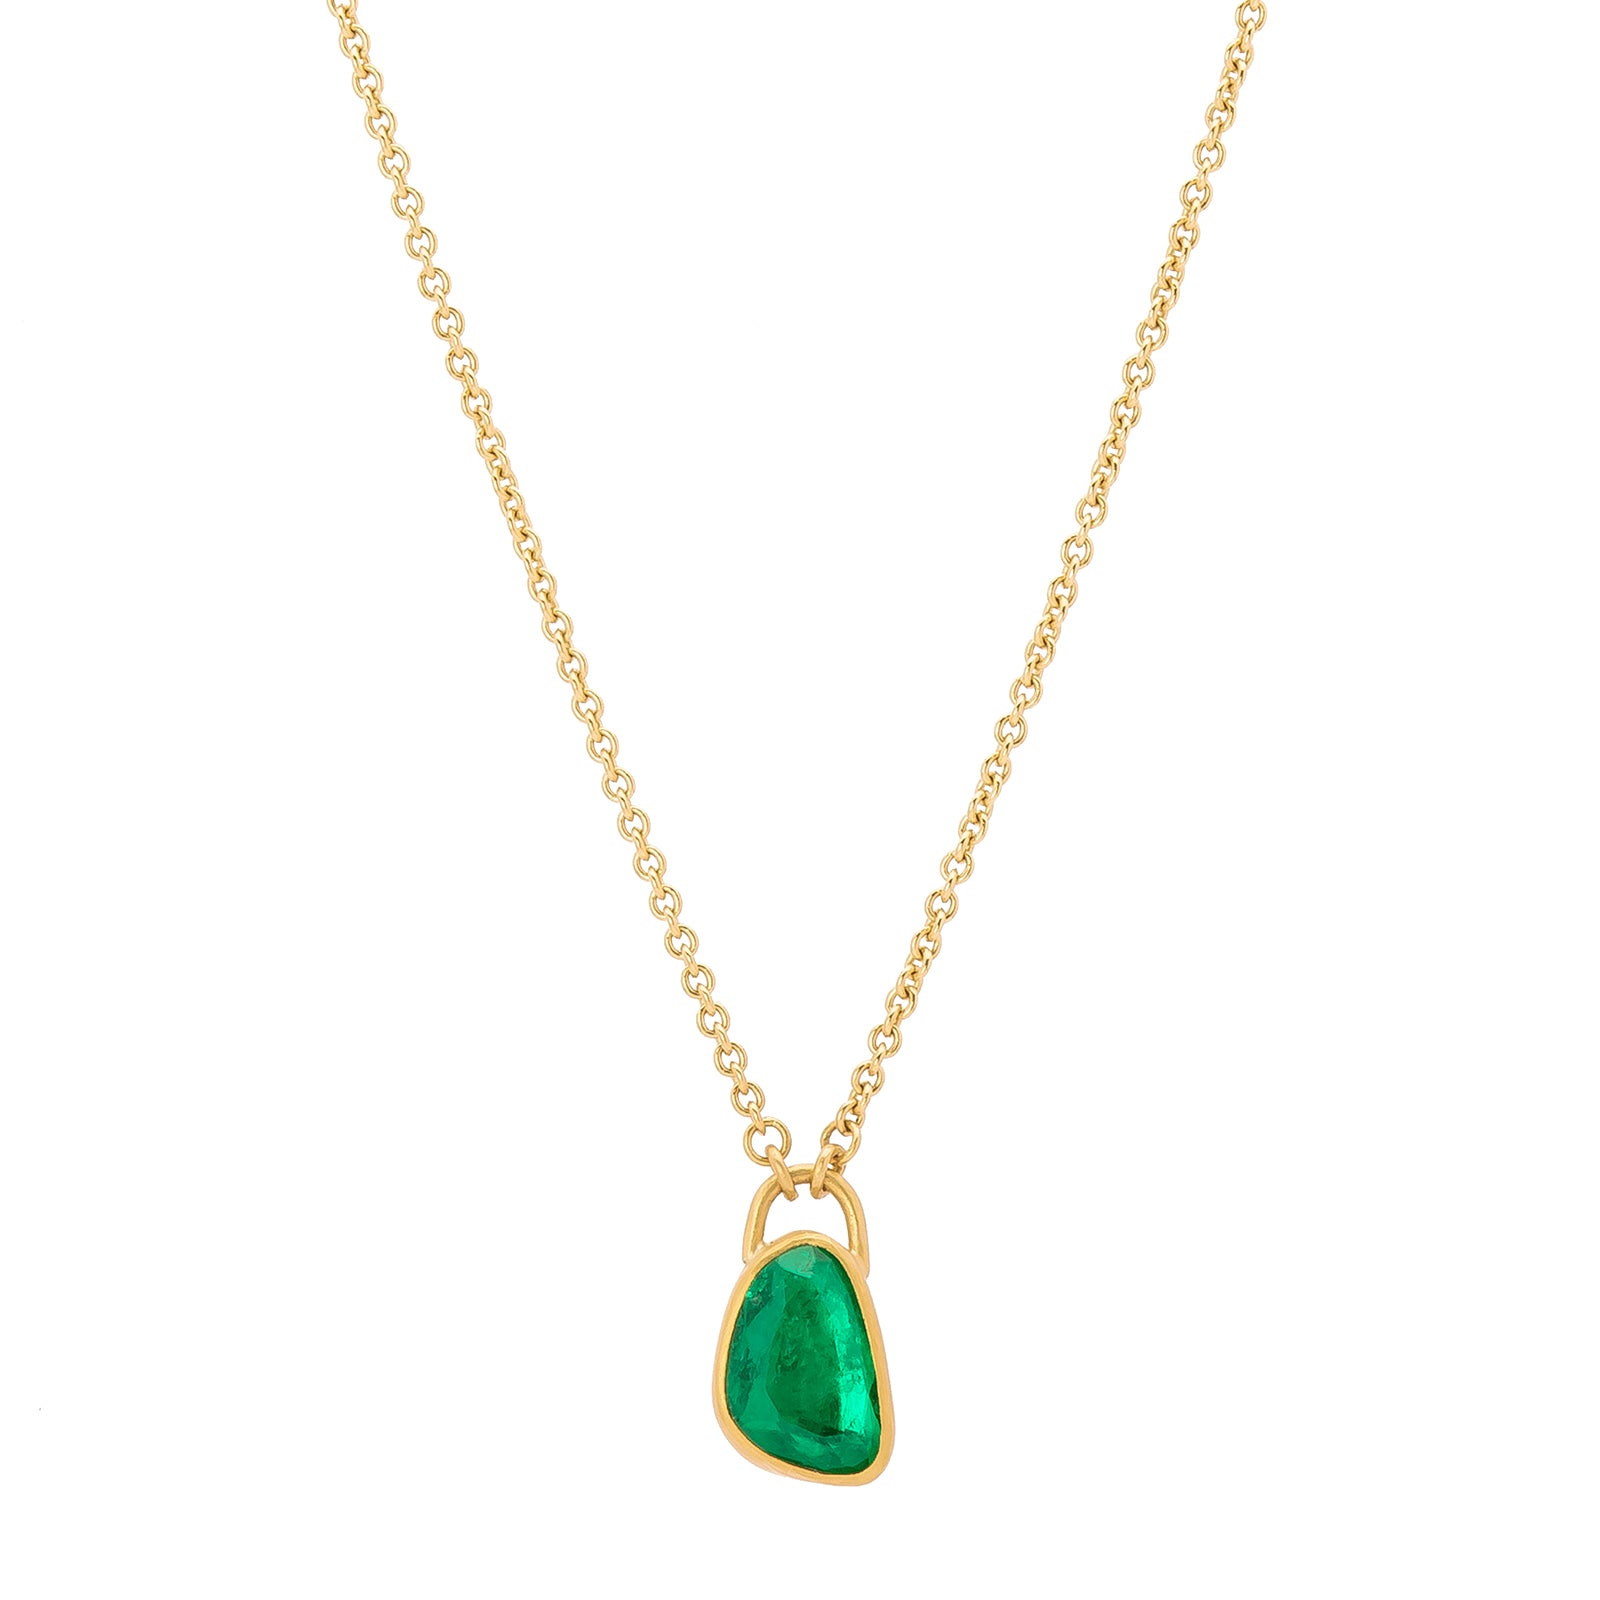 Eli Halili Pendant Necklace - Emerald - Necklaces - Broken English Jewelry